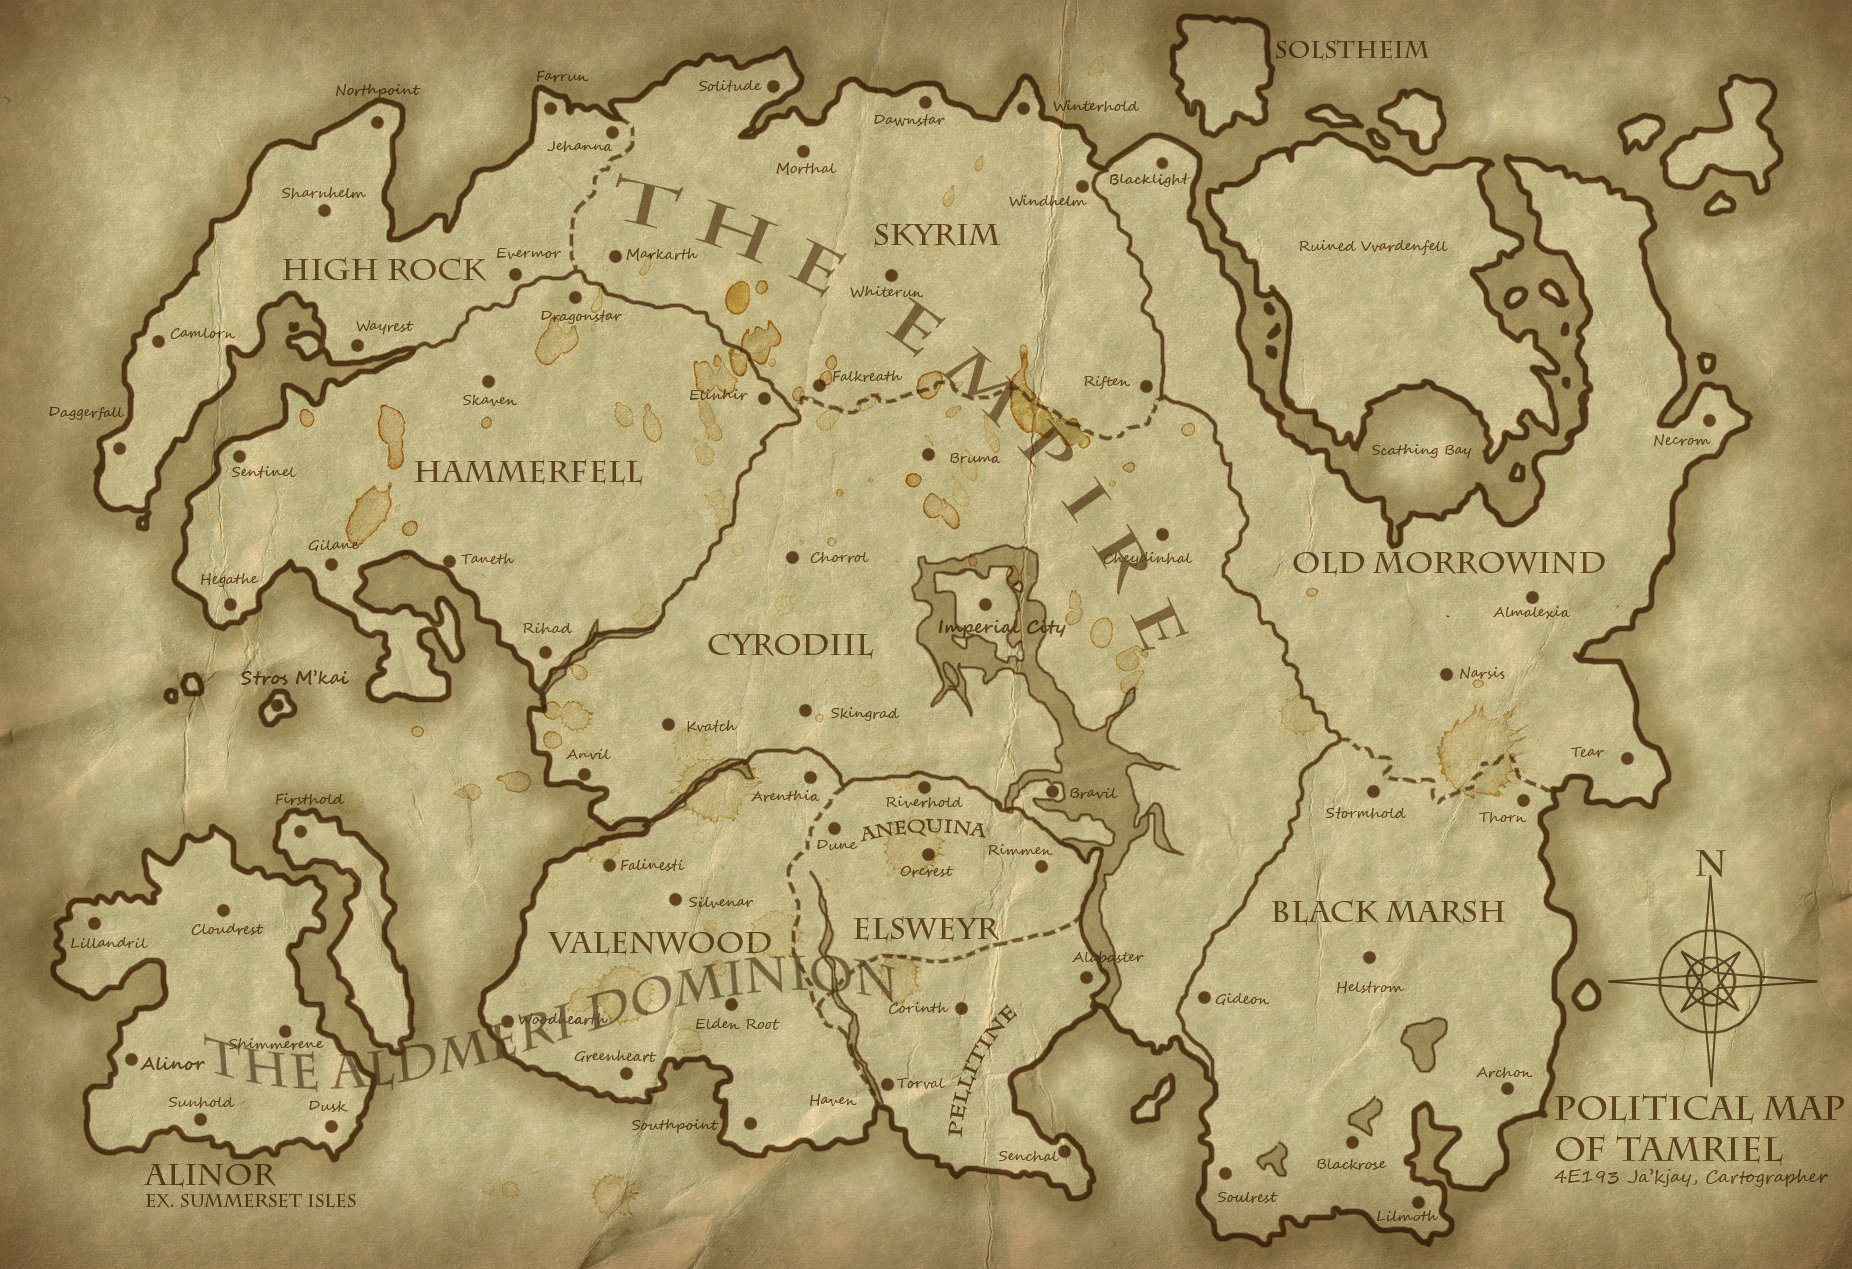 how to get to tamriel in skyrim